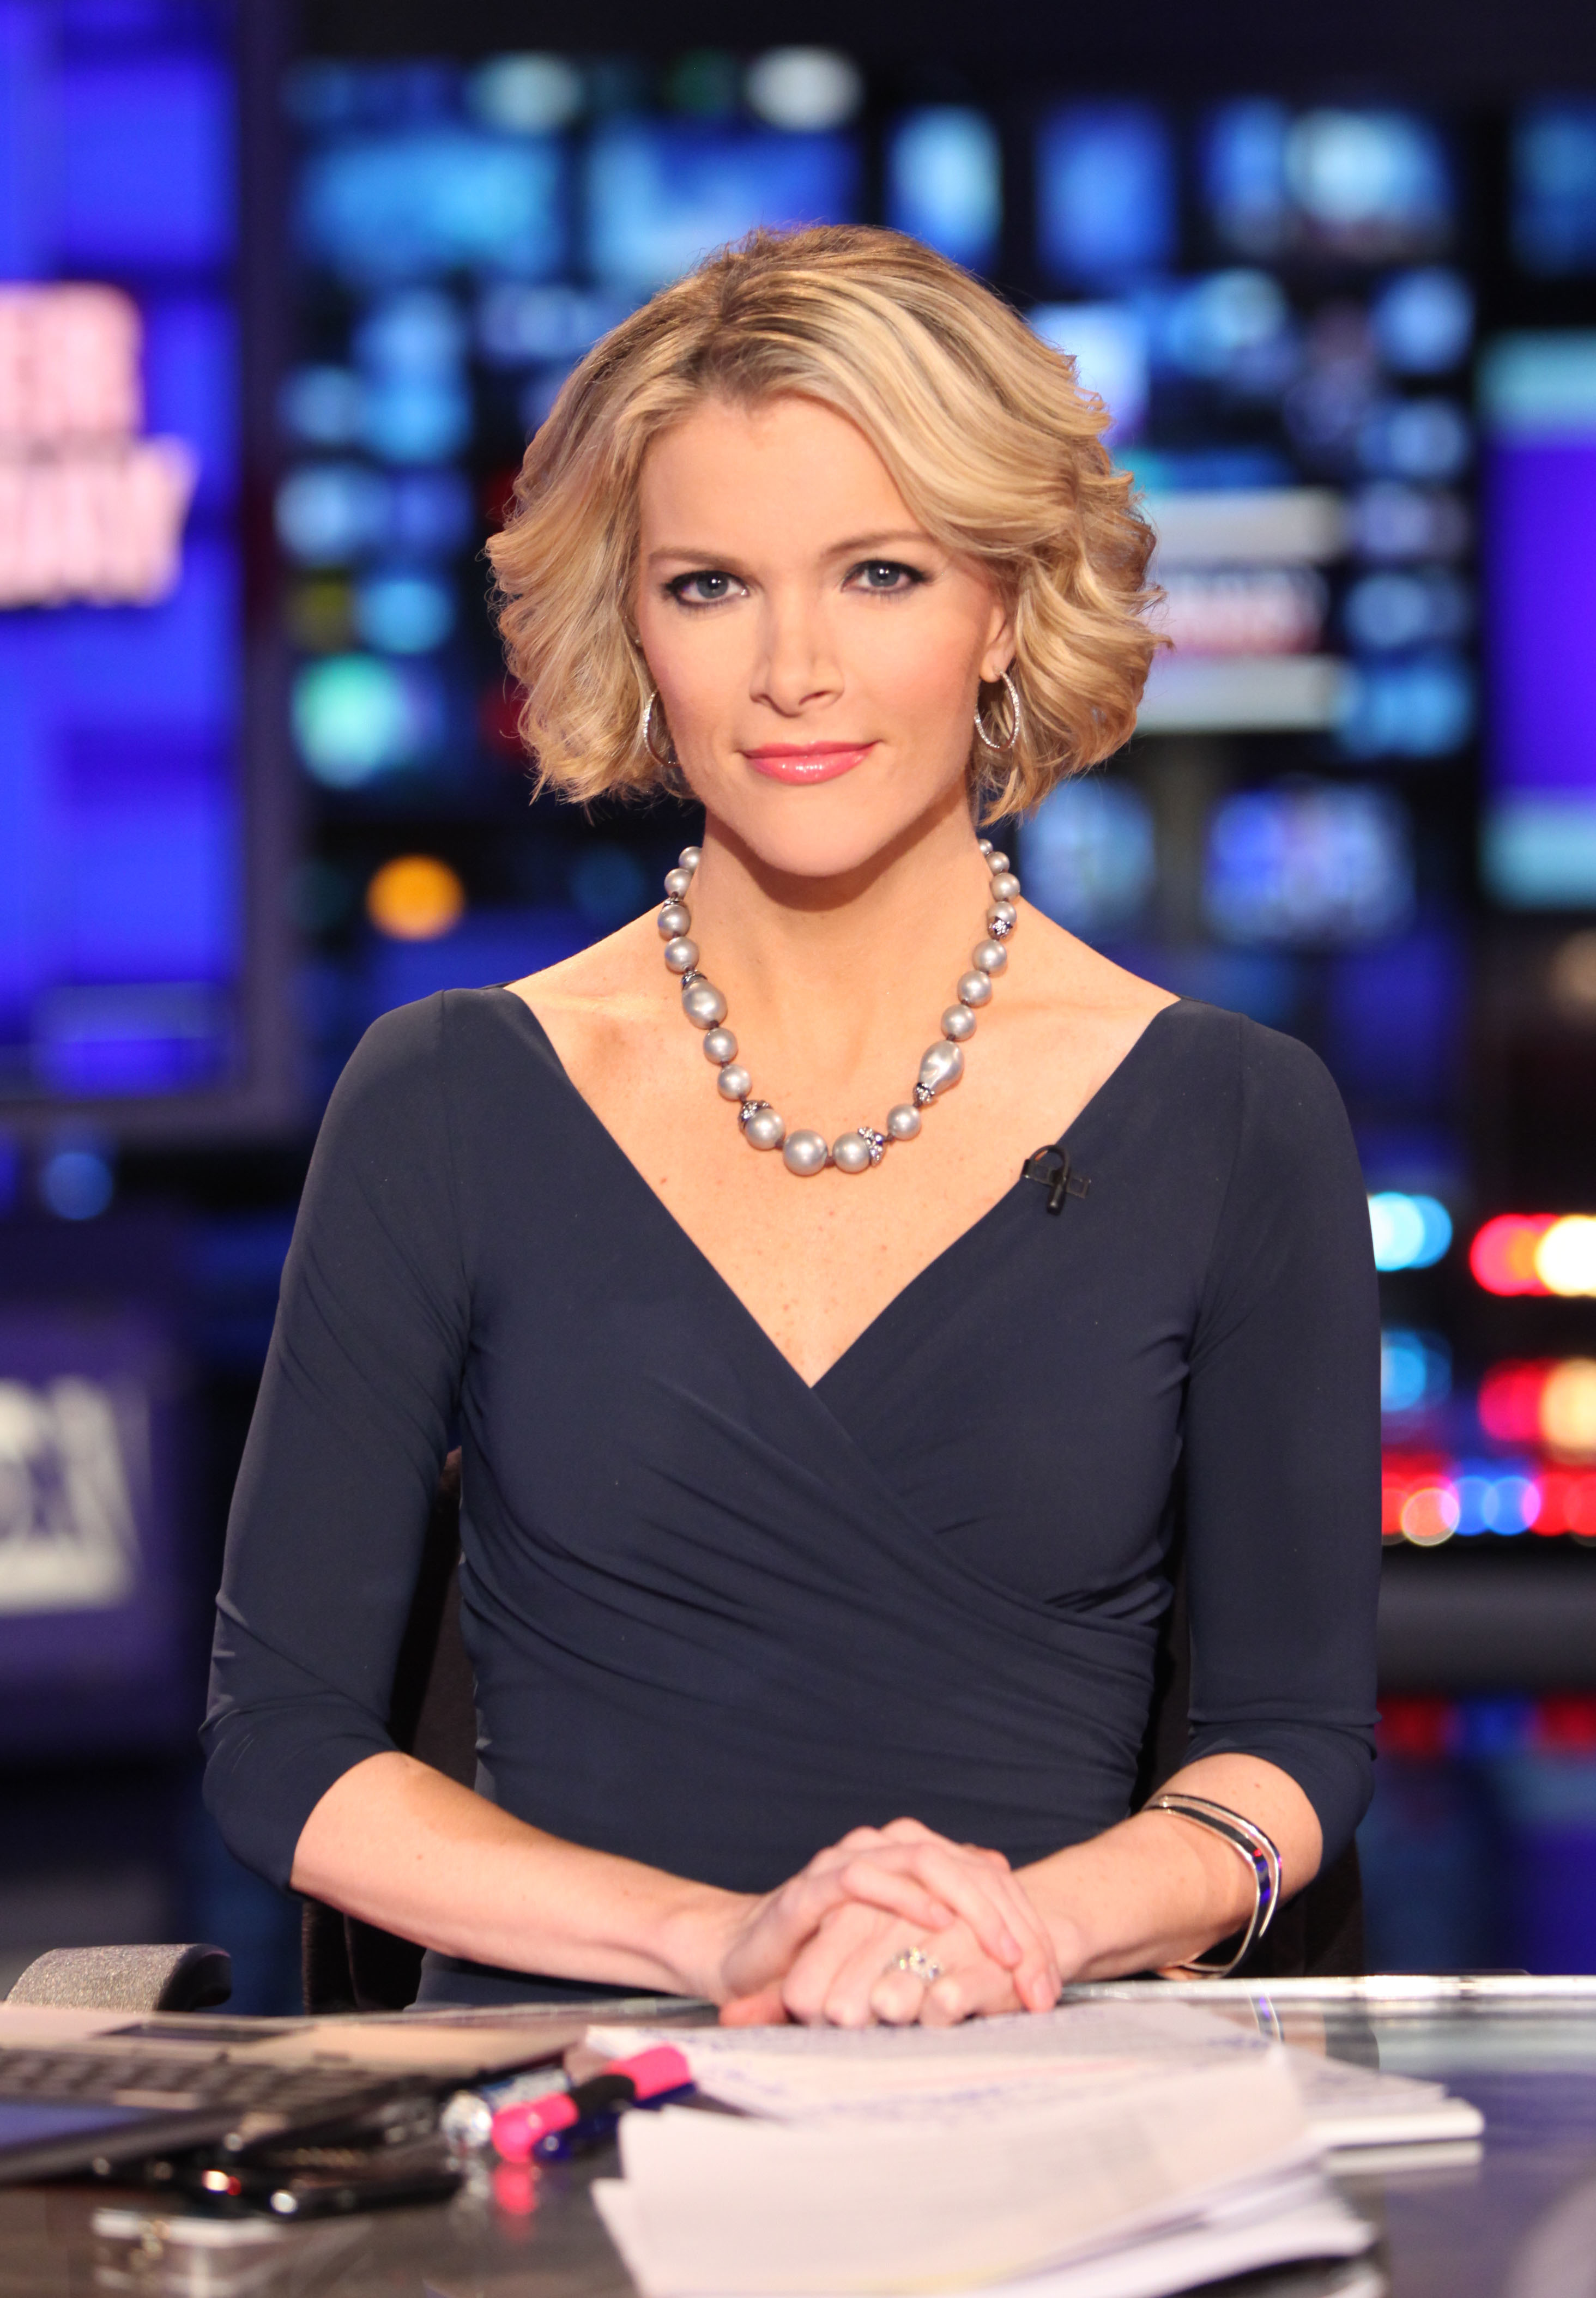 Megyn Kelly wants to be more like Oprah at NBC: Report